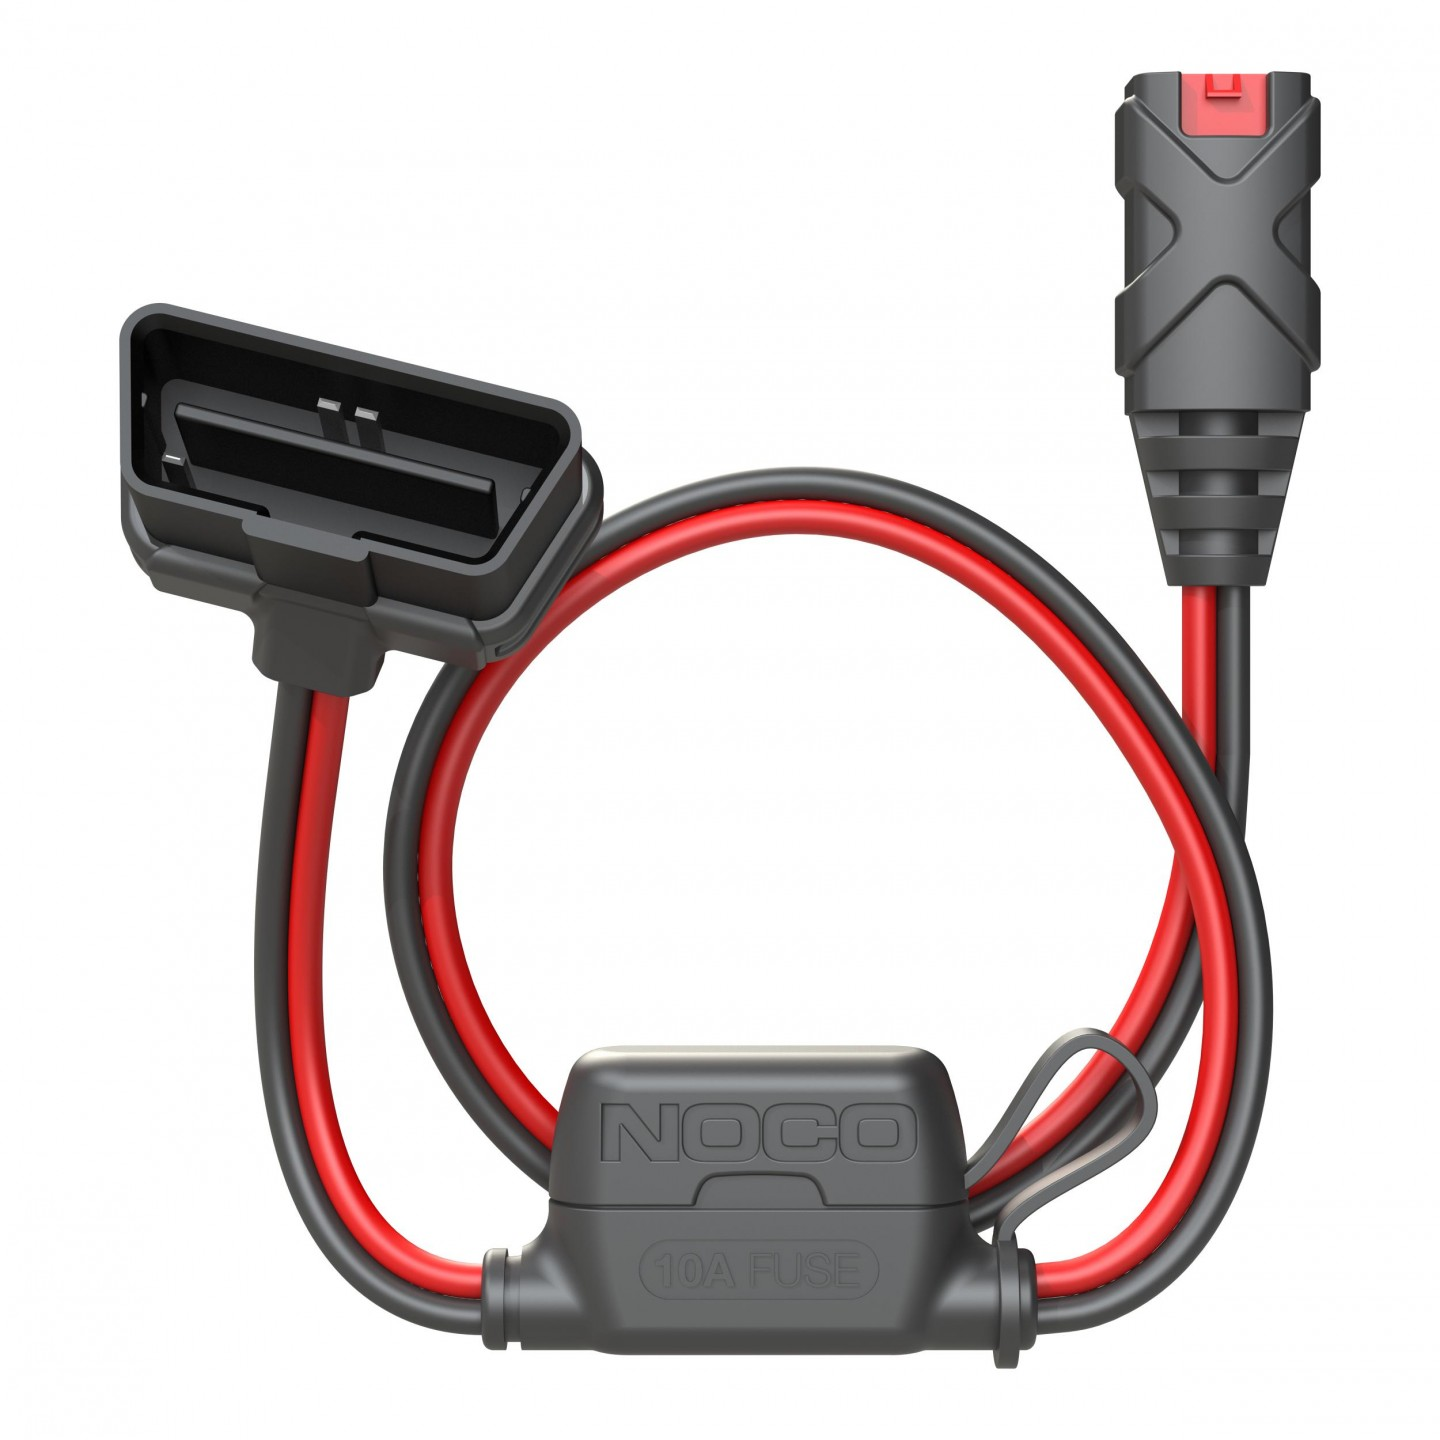 GC012-OBDII-OBD-2-connector-female-xconnect-with-fuse-protection-back-plug-pins.jpg